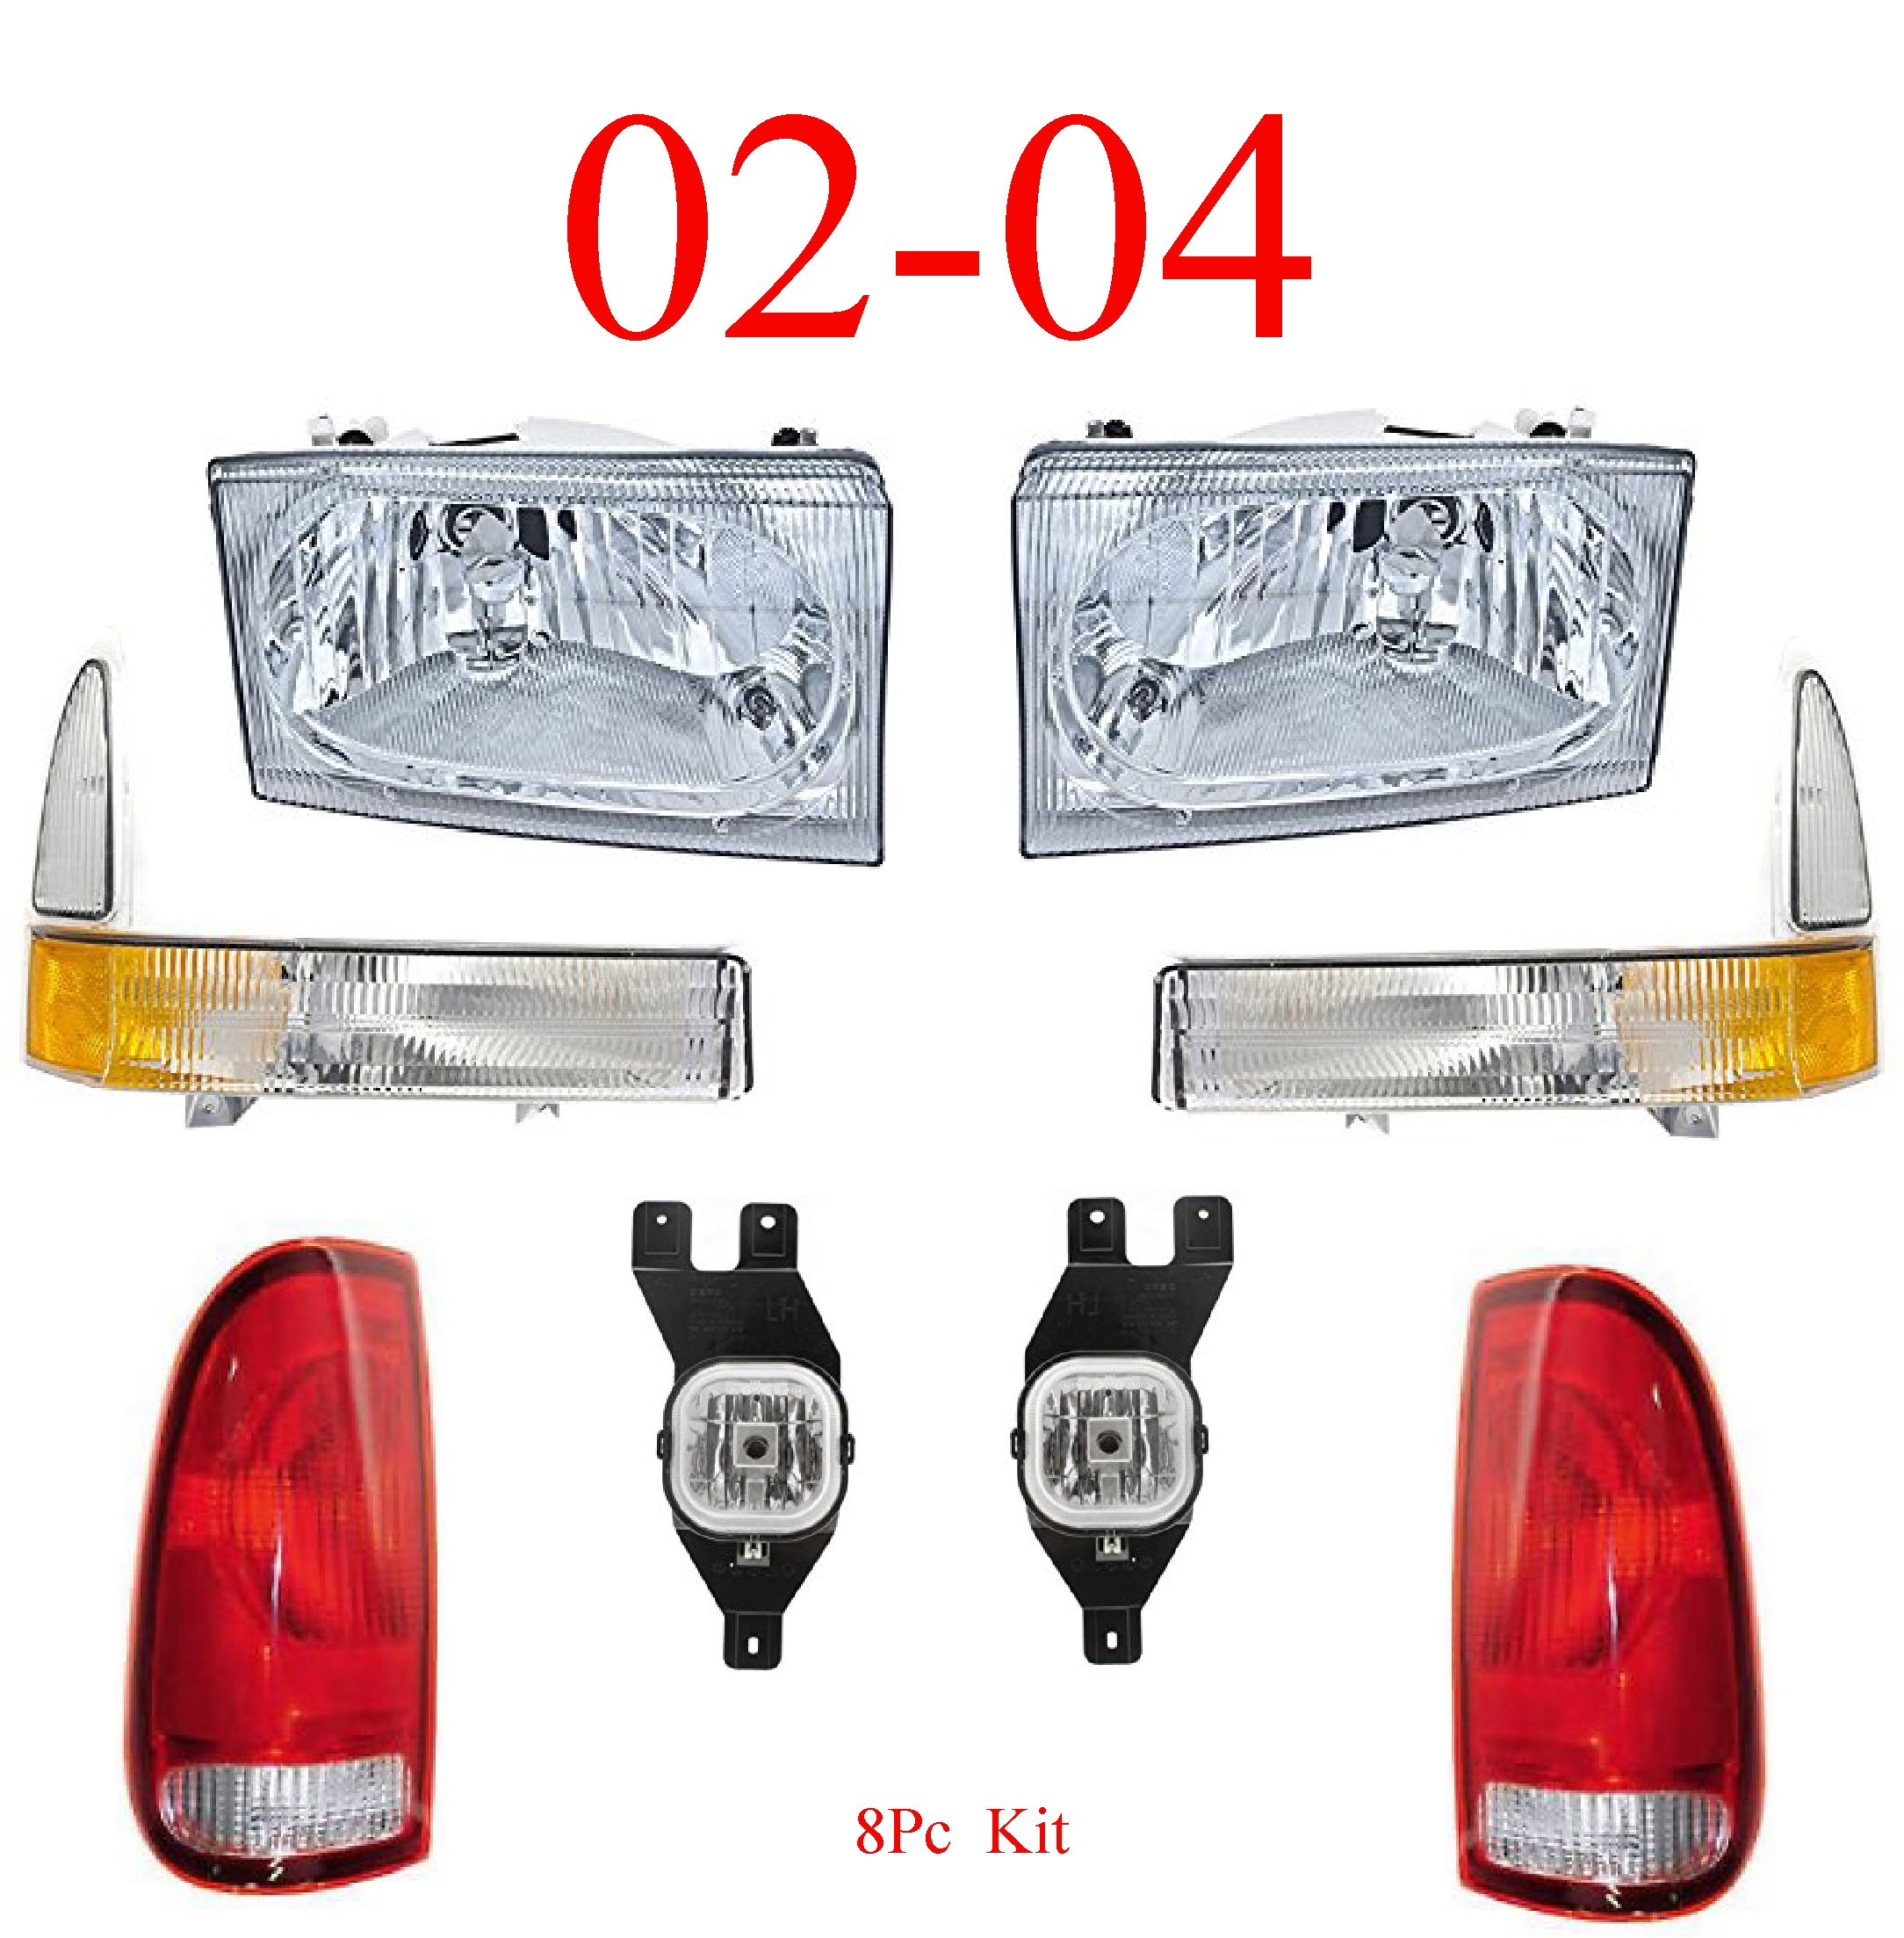 02-04 Ford Super Duty 8Pc Head, Park, Fog & Tail Light Kit